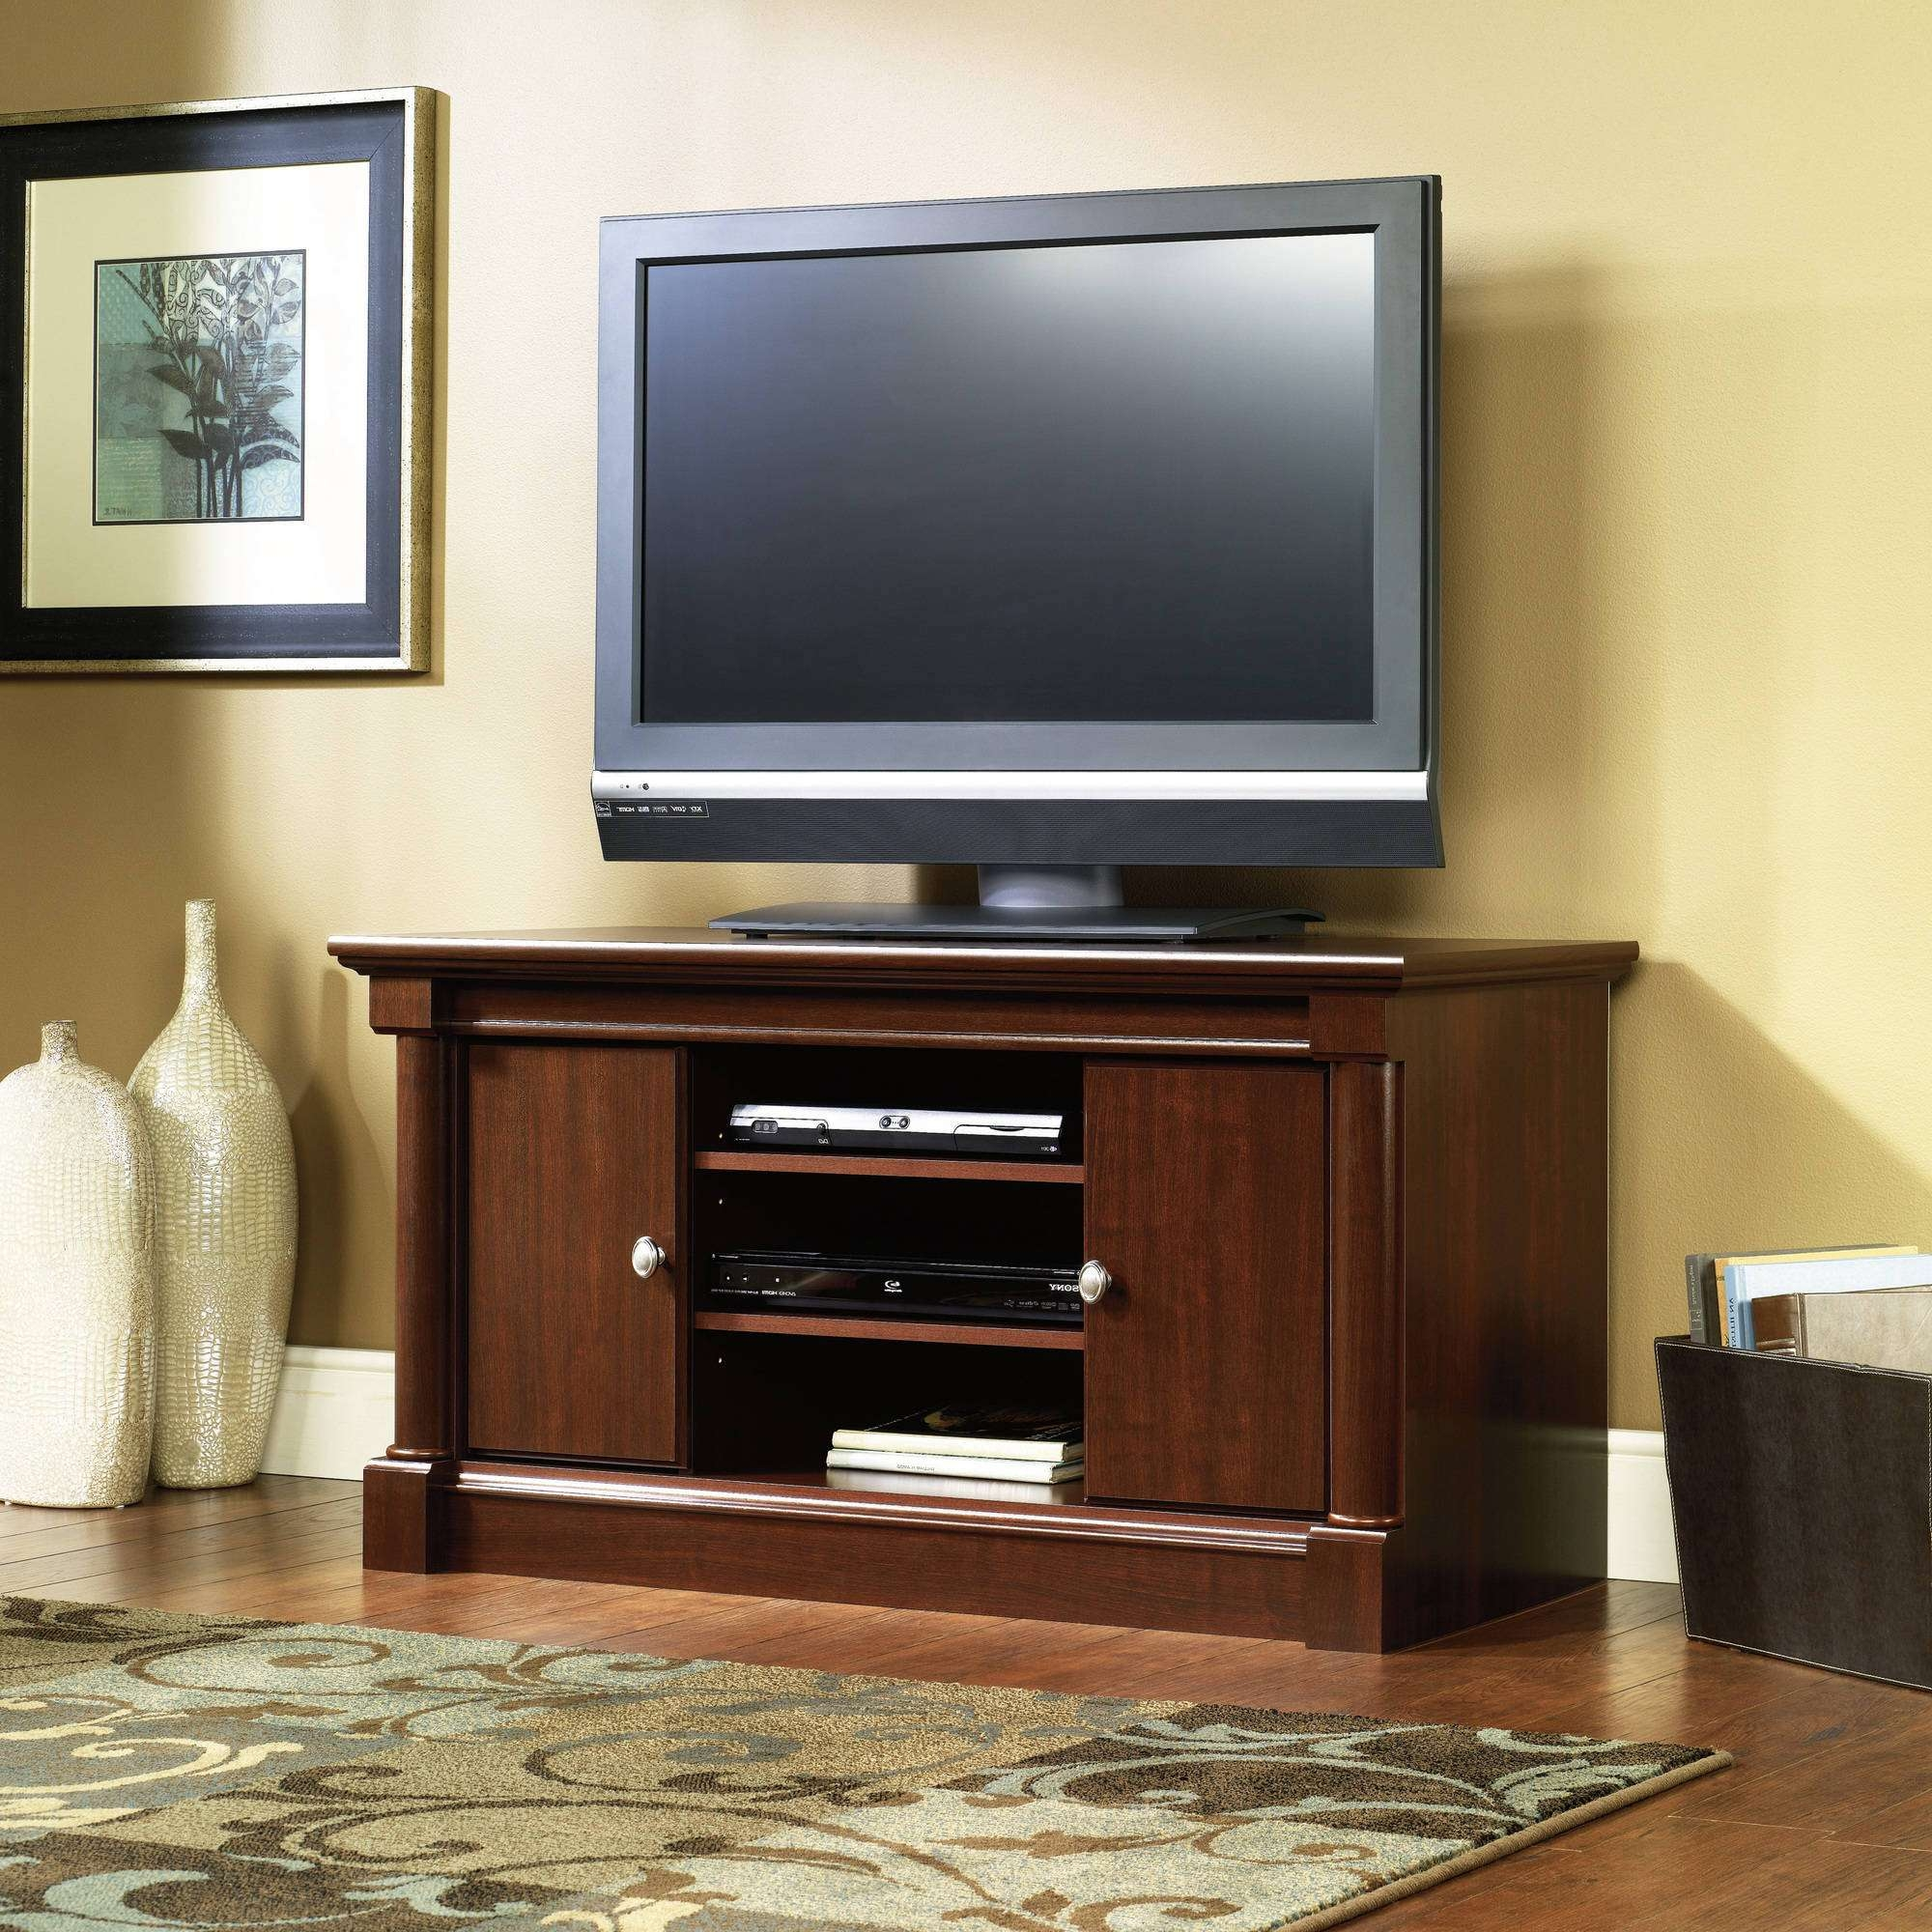 Cherry Tv Stands Inside Light Cherry Tv Stands (View 1 of 15)